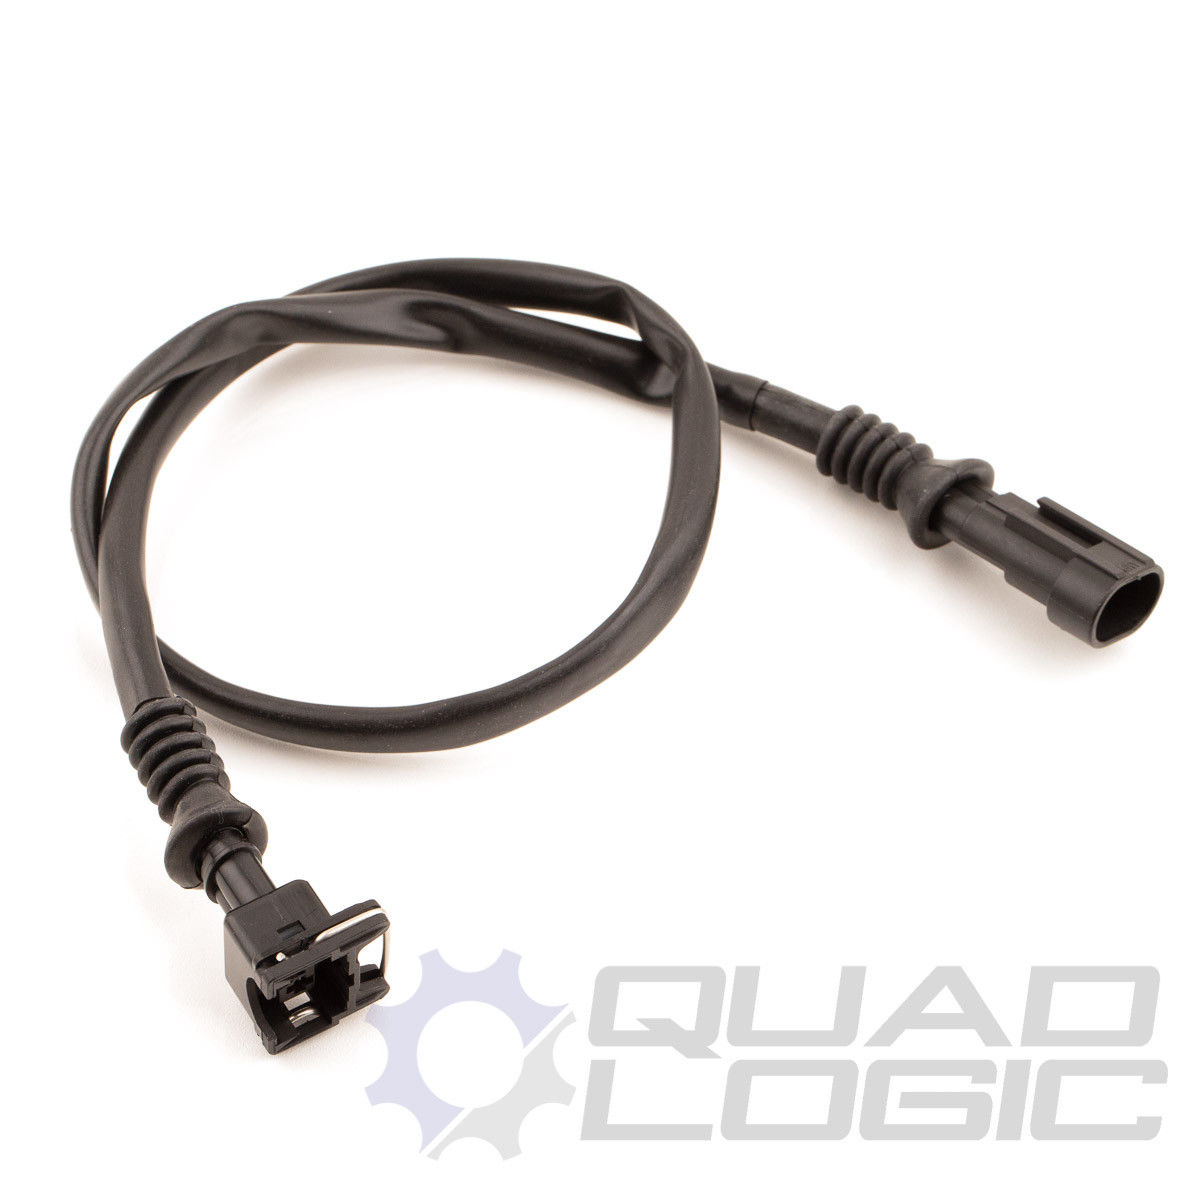 ranger 700 efi fuel injector pigtail harness